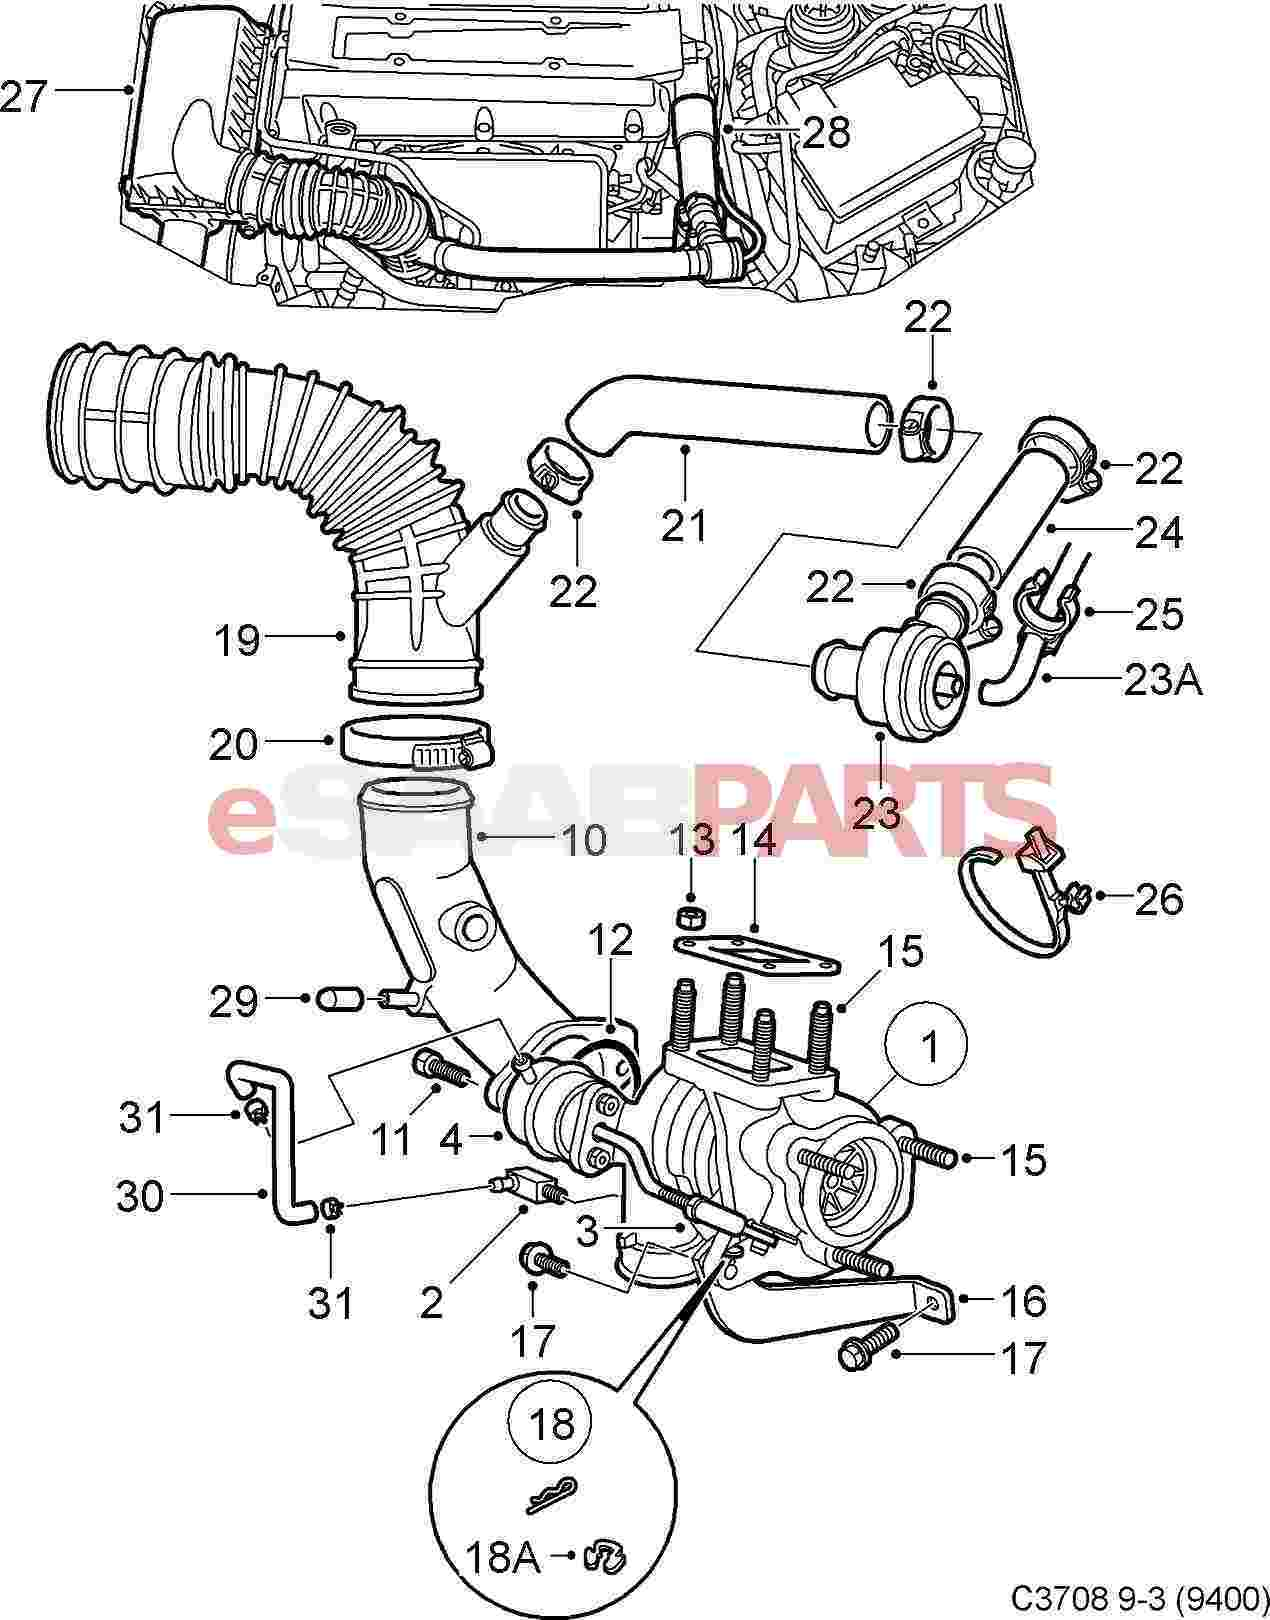 2003 Mitsubishi Lancer Engine Diagram